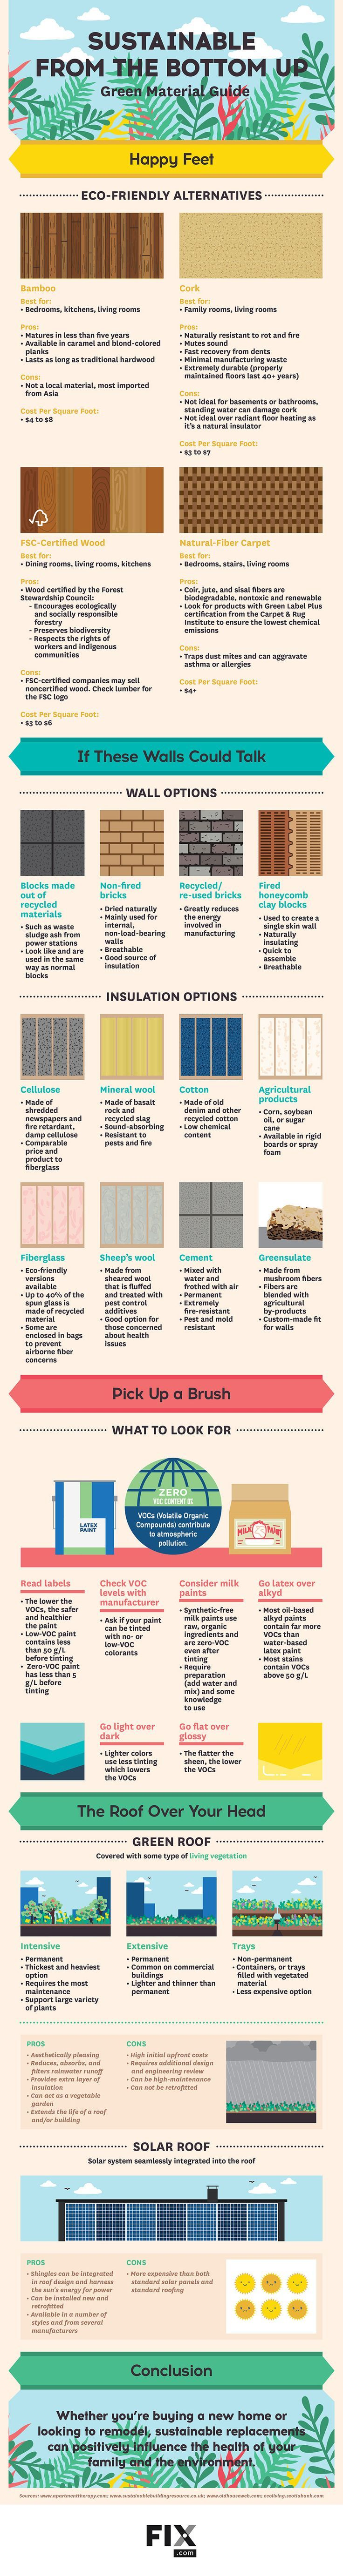 Use these eco-friendly materials in your walls, floor, roof and more for a greener home! Please choose cruelty free. Go vegan, avoid milk paints, sheep's wool insulation,